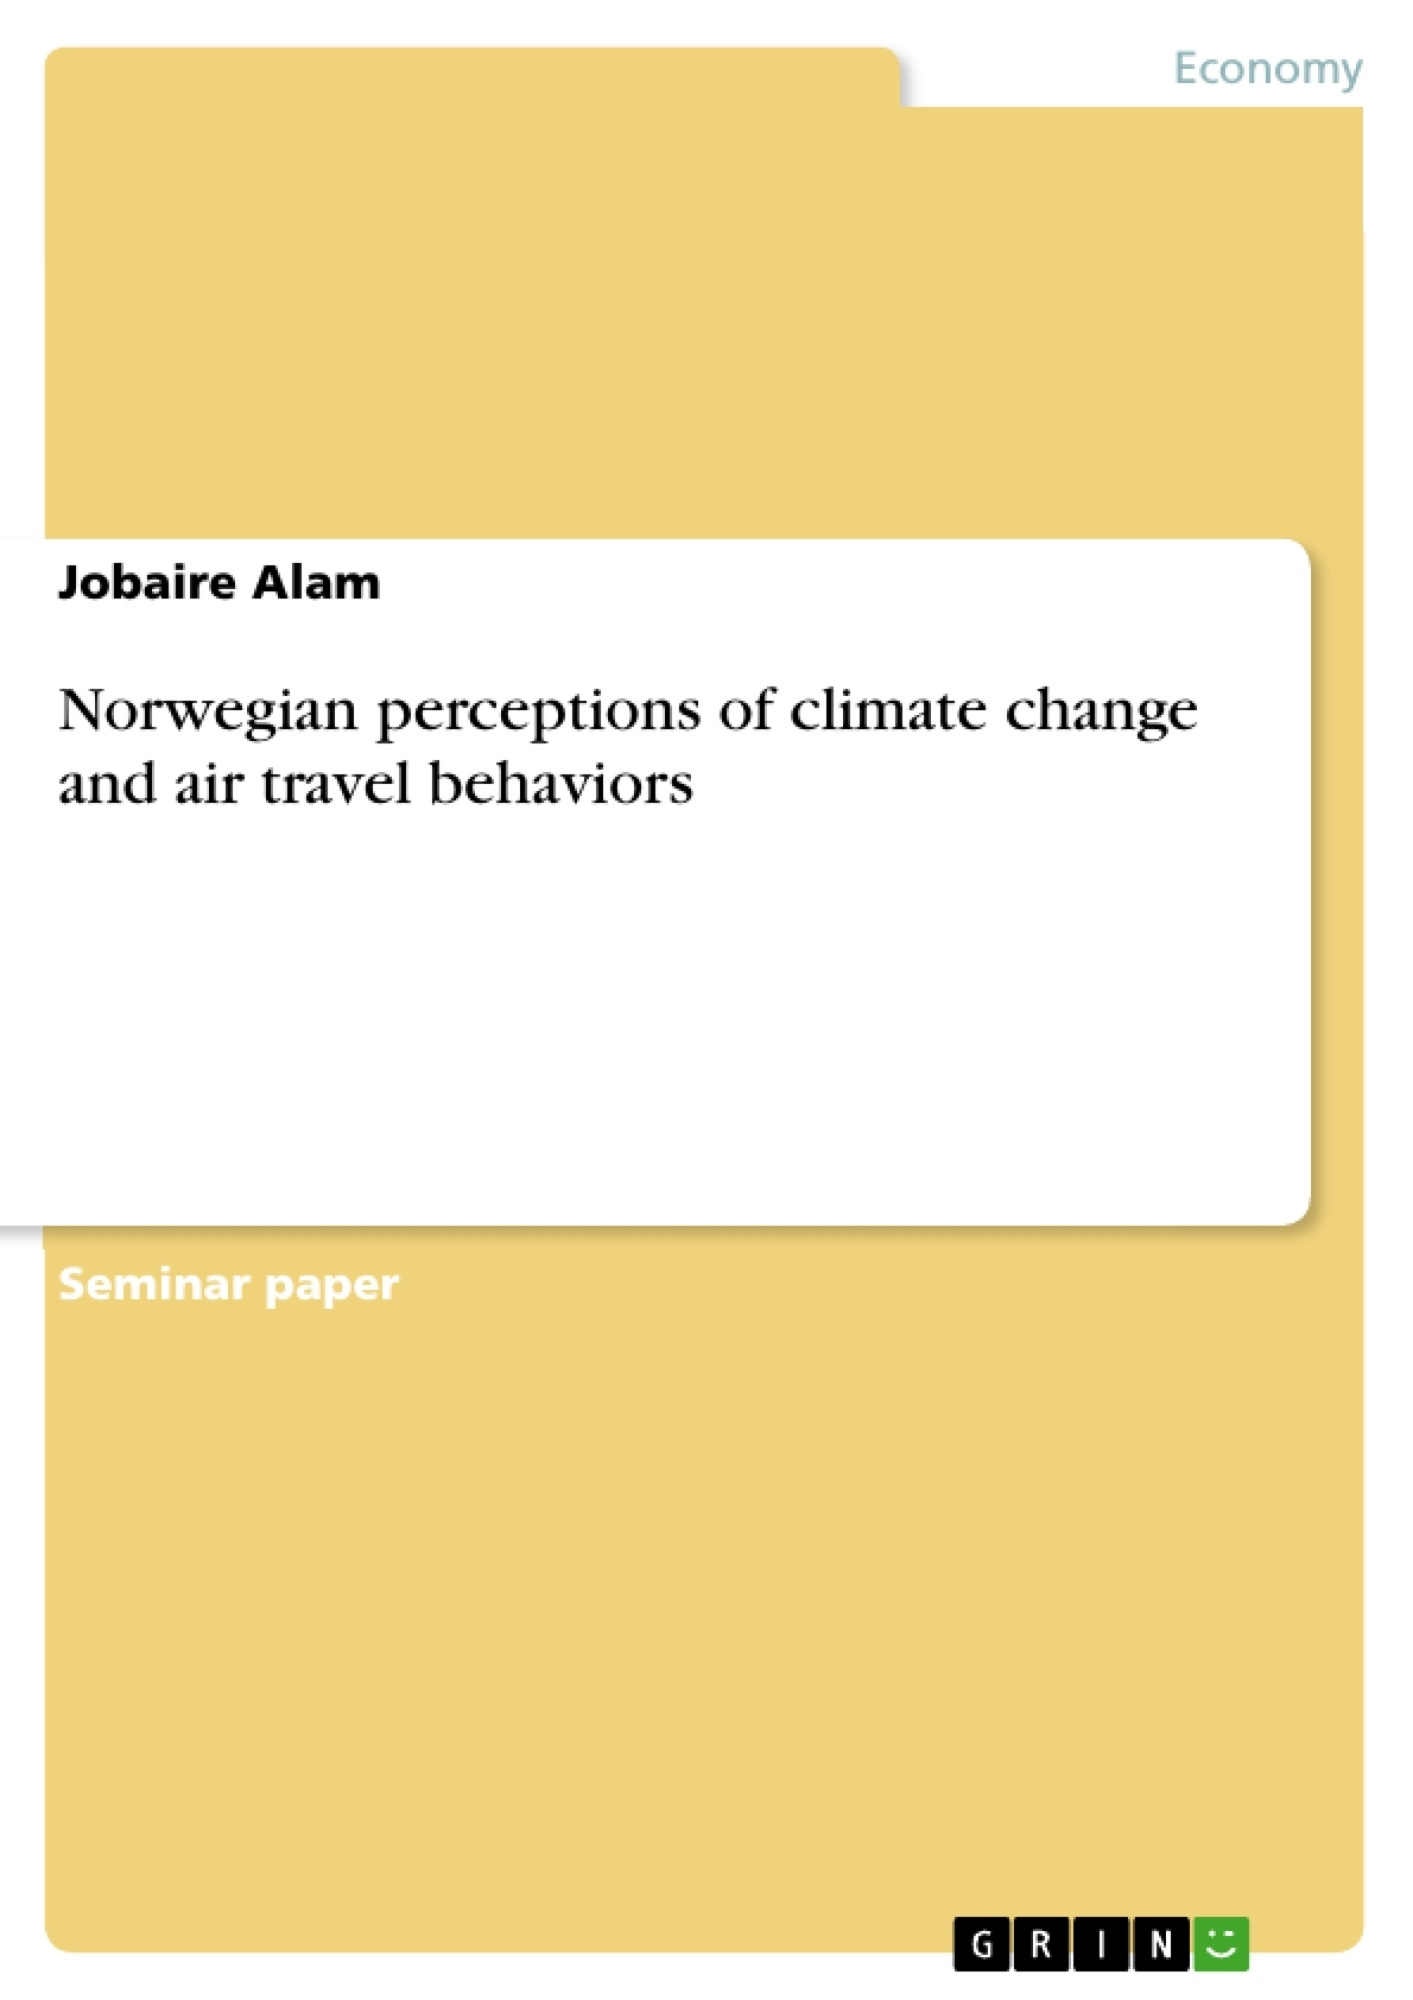 Title: Norwegian perceptions of climate change and air travel behaviors